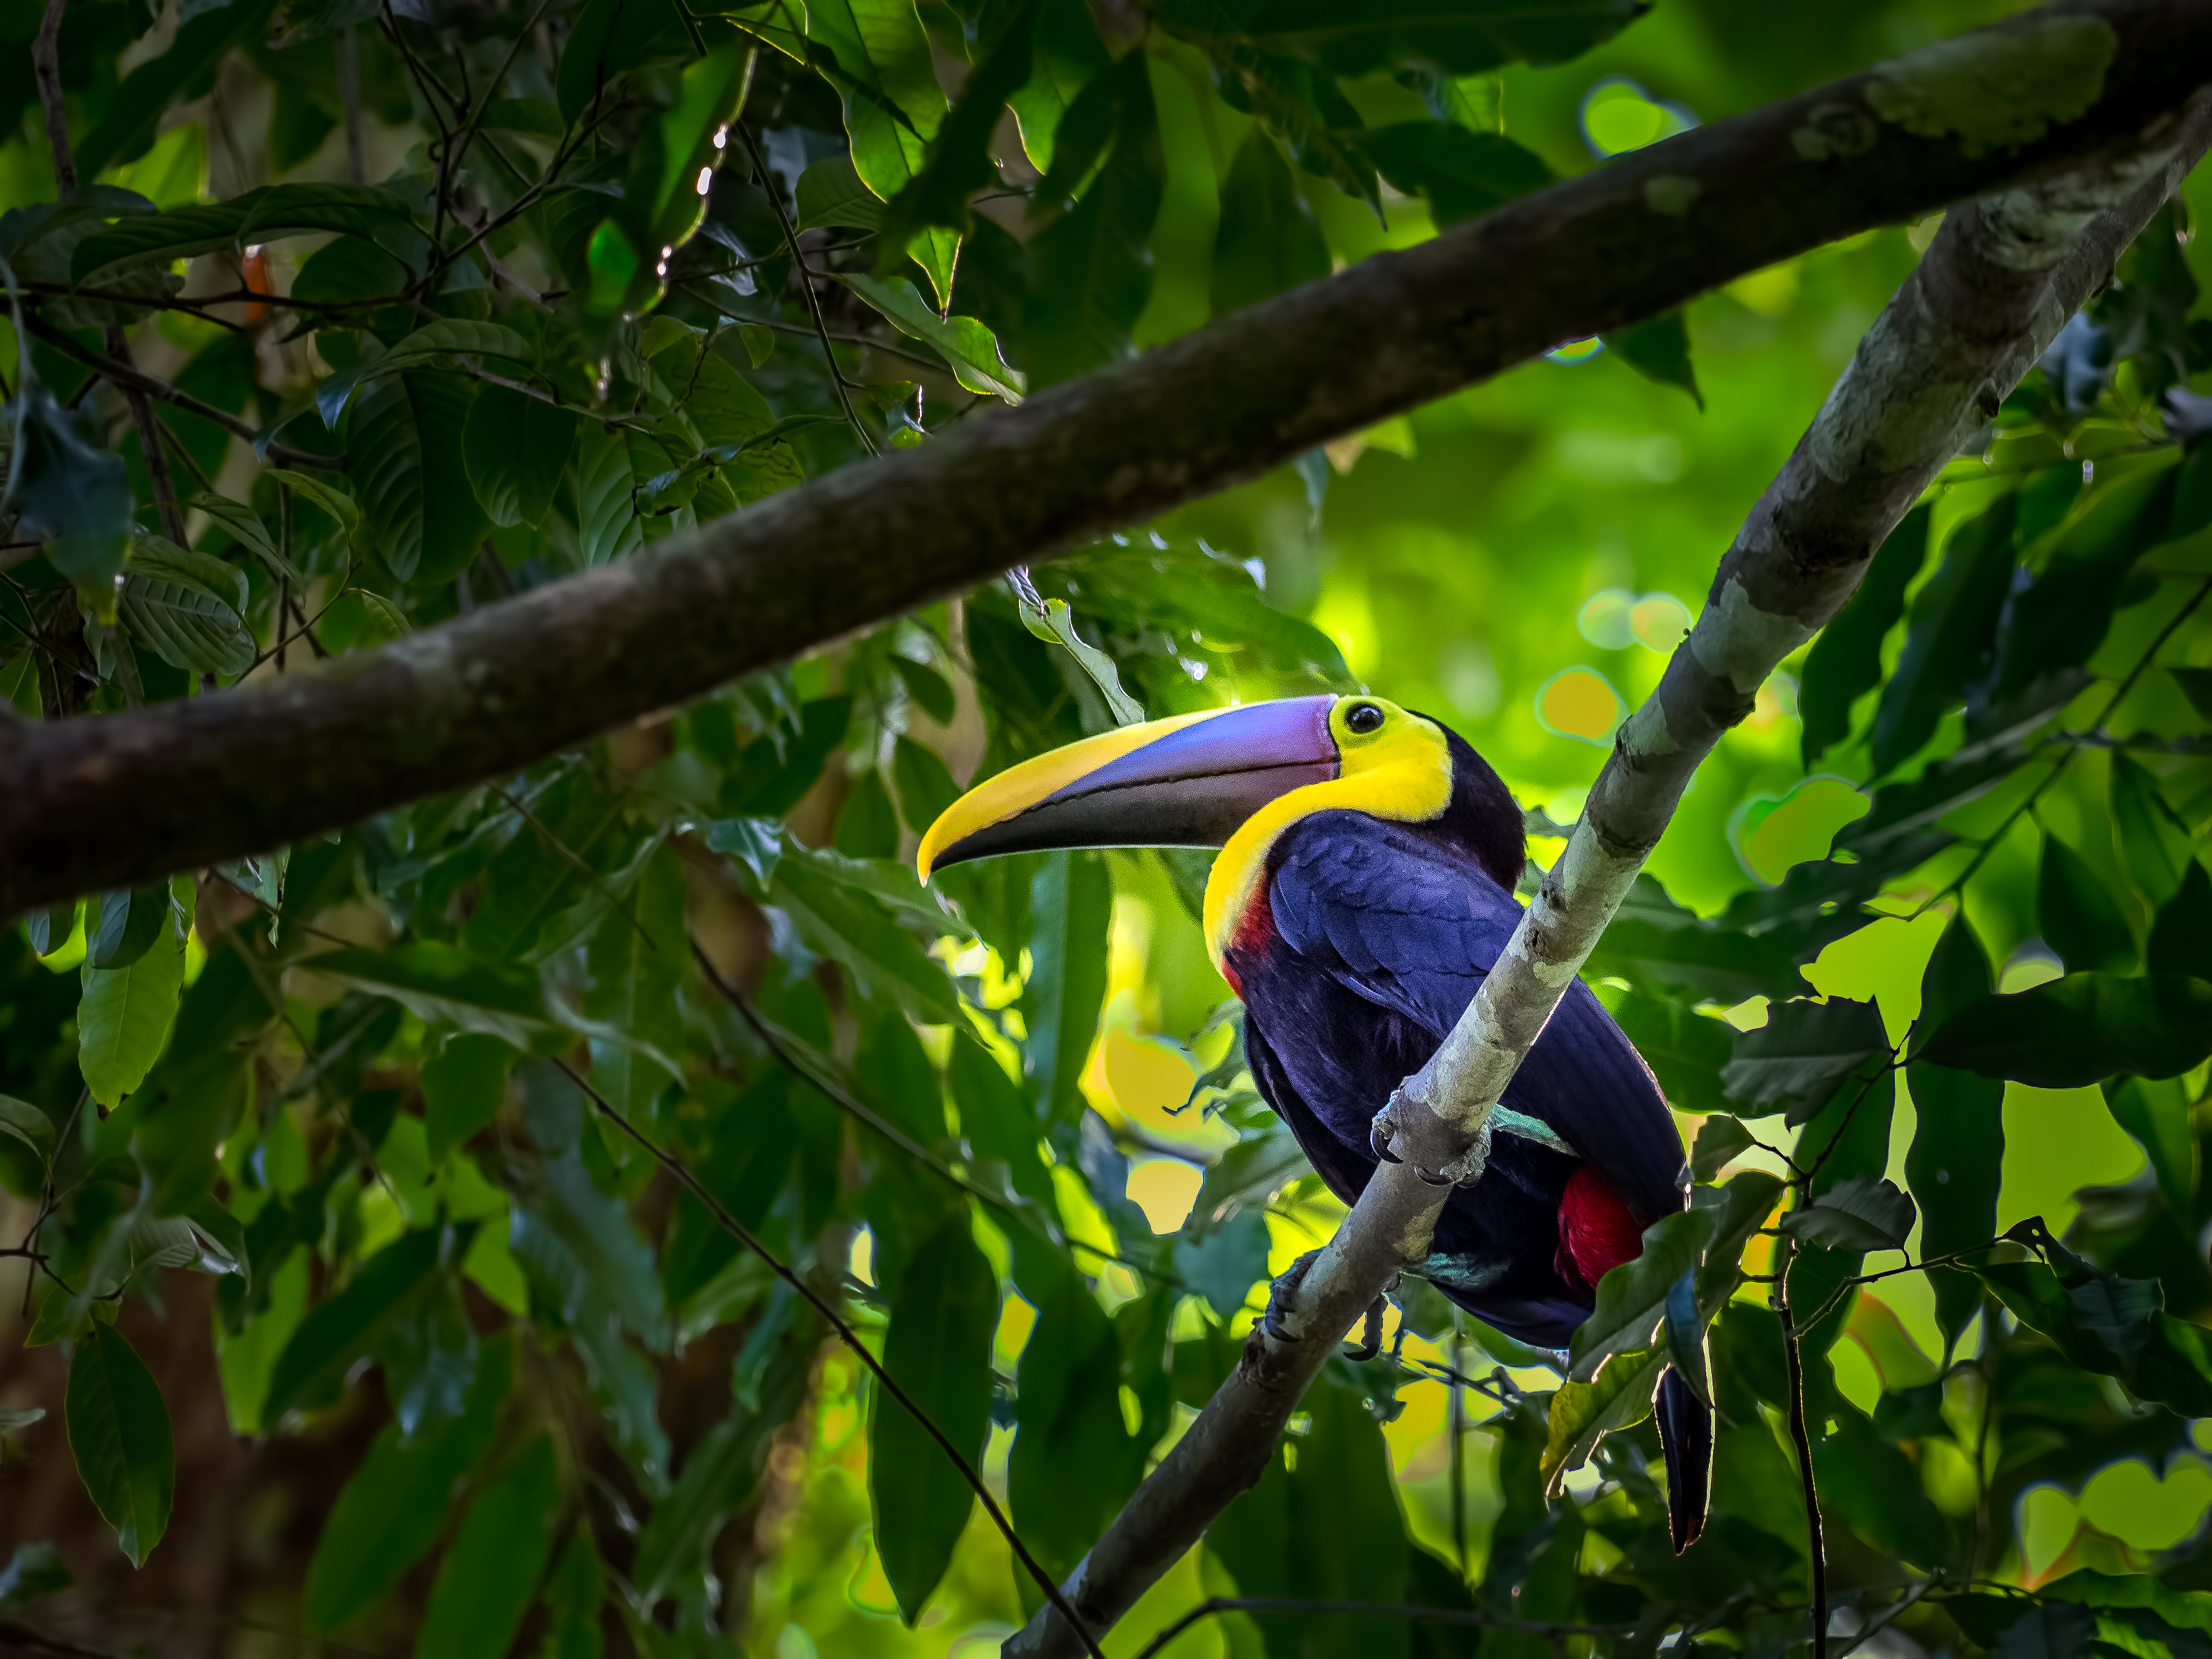 Olympus M.Zuiko ED 300mm F4.0 IS PRO sample image: toucan in the jungle